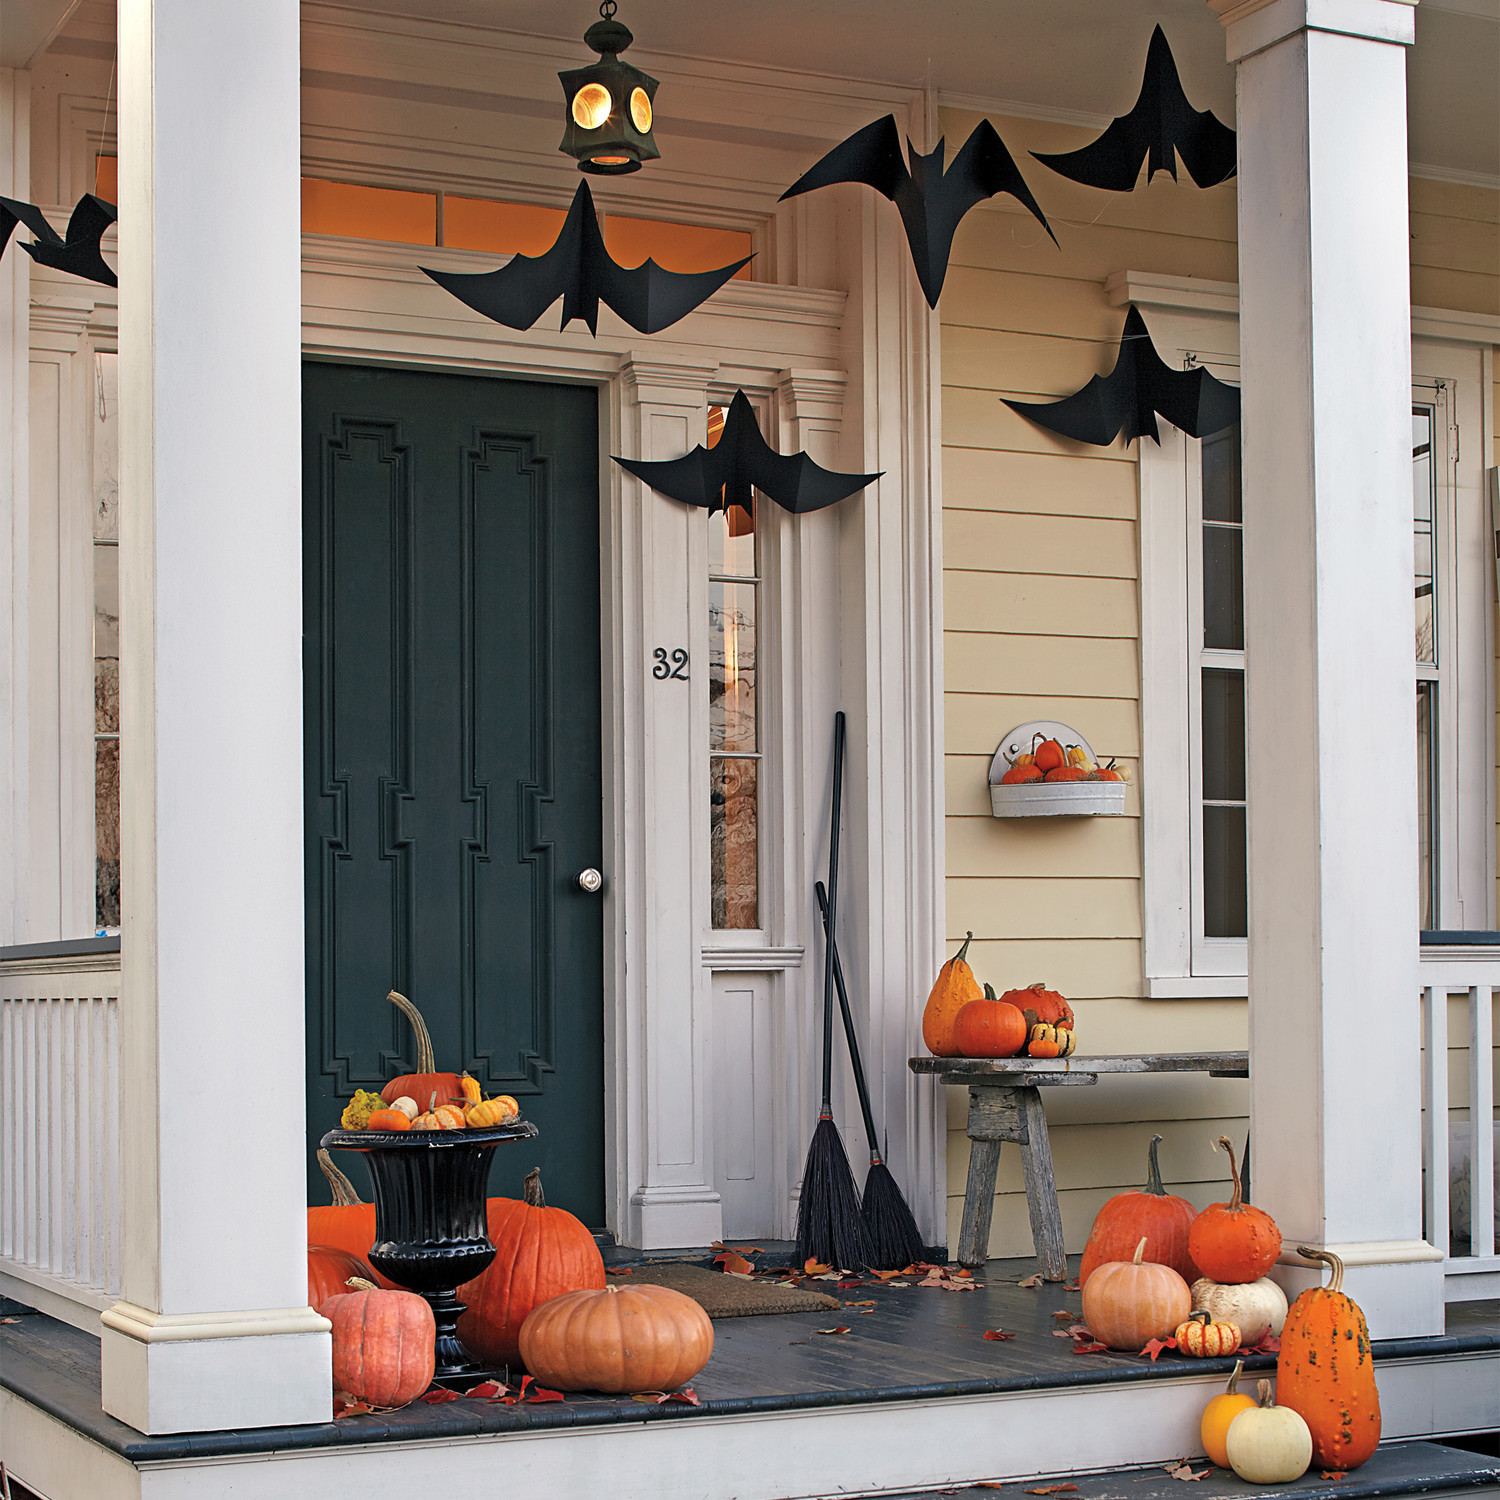 outdoor halloween decorations - Halloween Bat Decorations